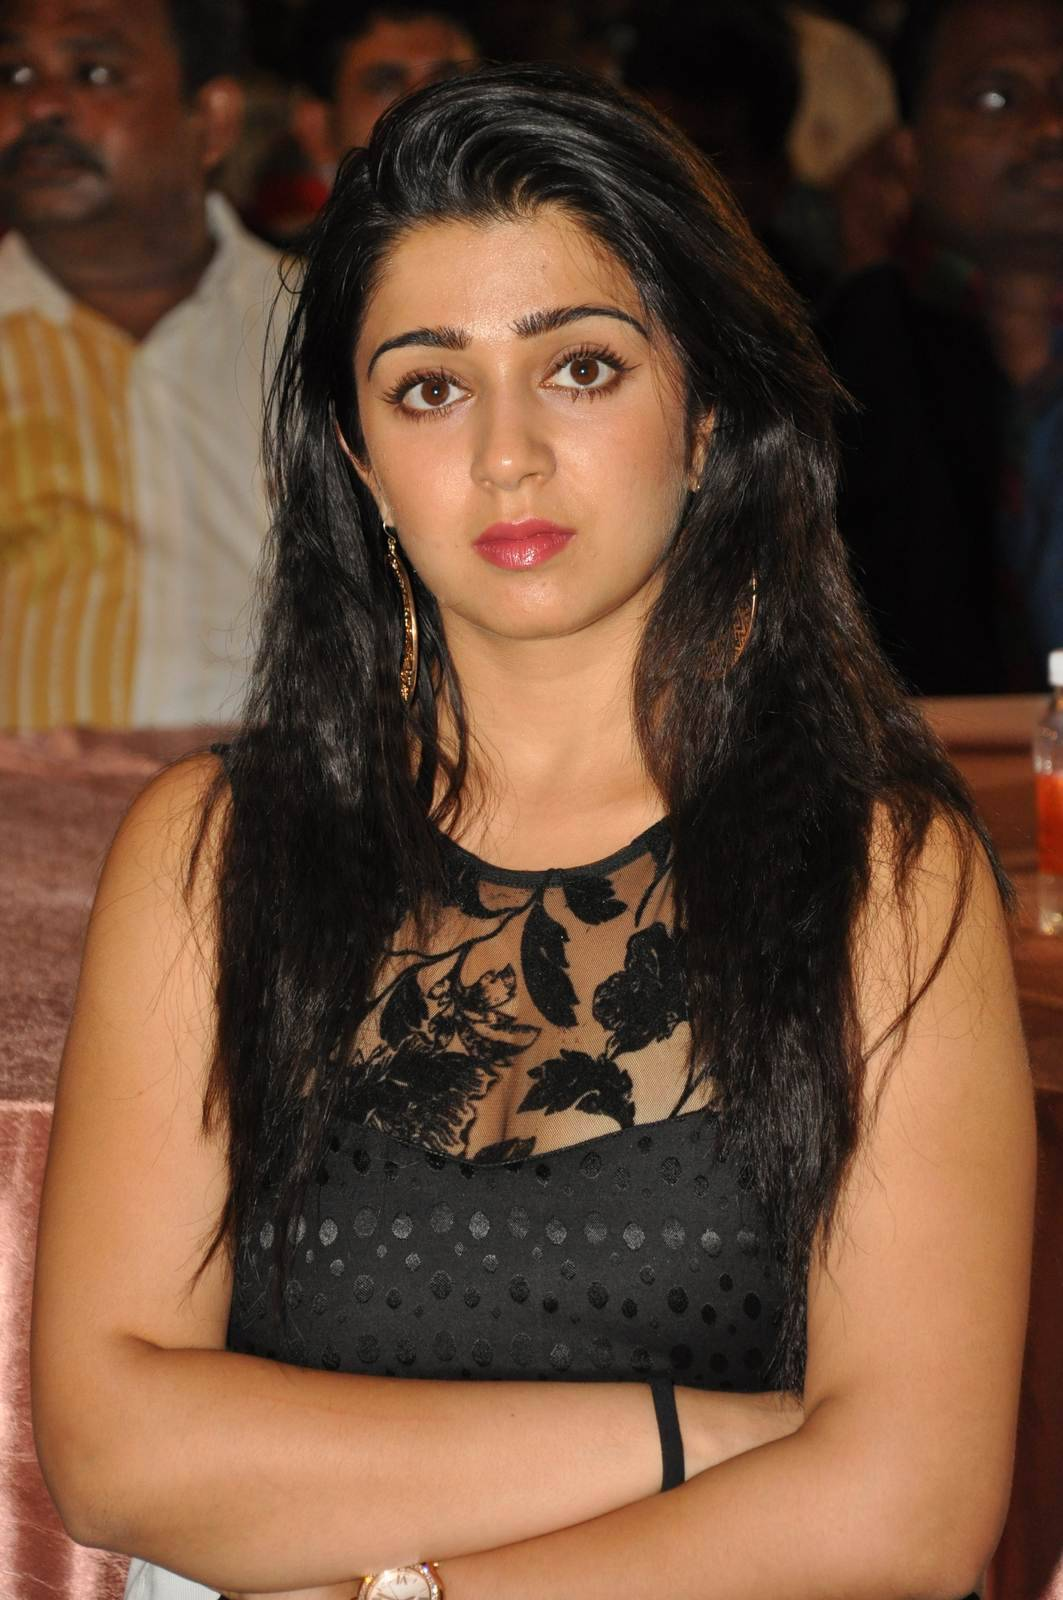 Charmi Photo Gallery with no Watermarks, Charmee Kaur Pics Clicked in Black Dress at Event